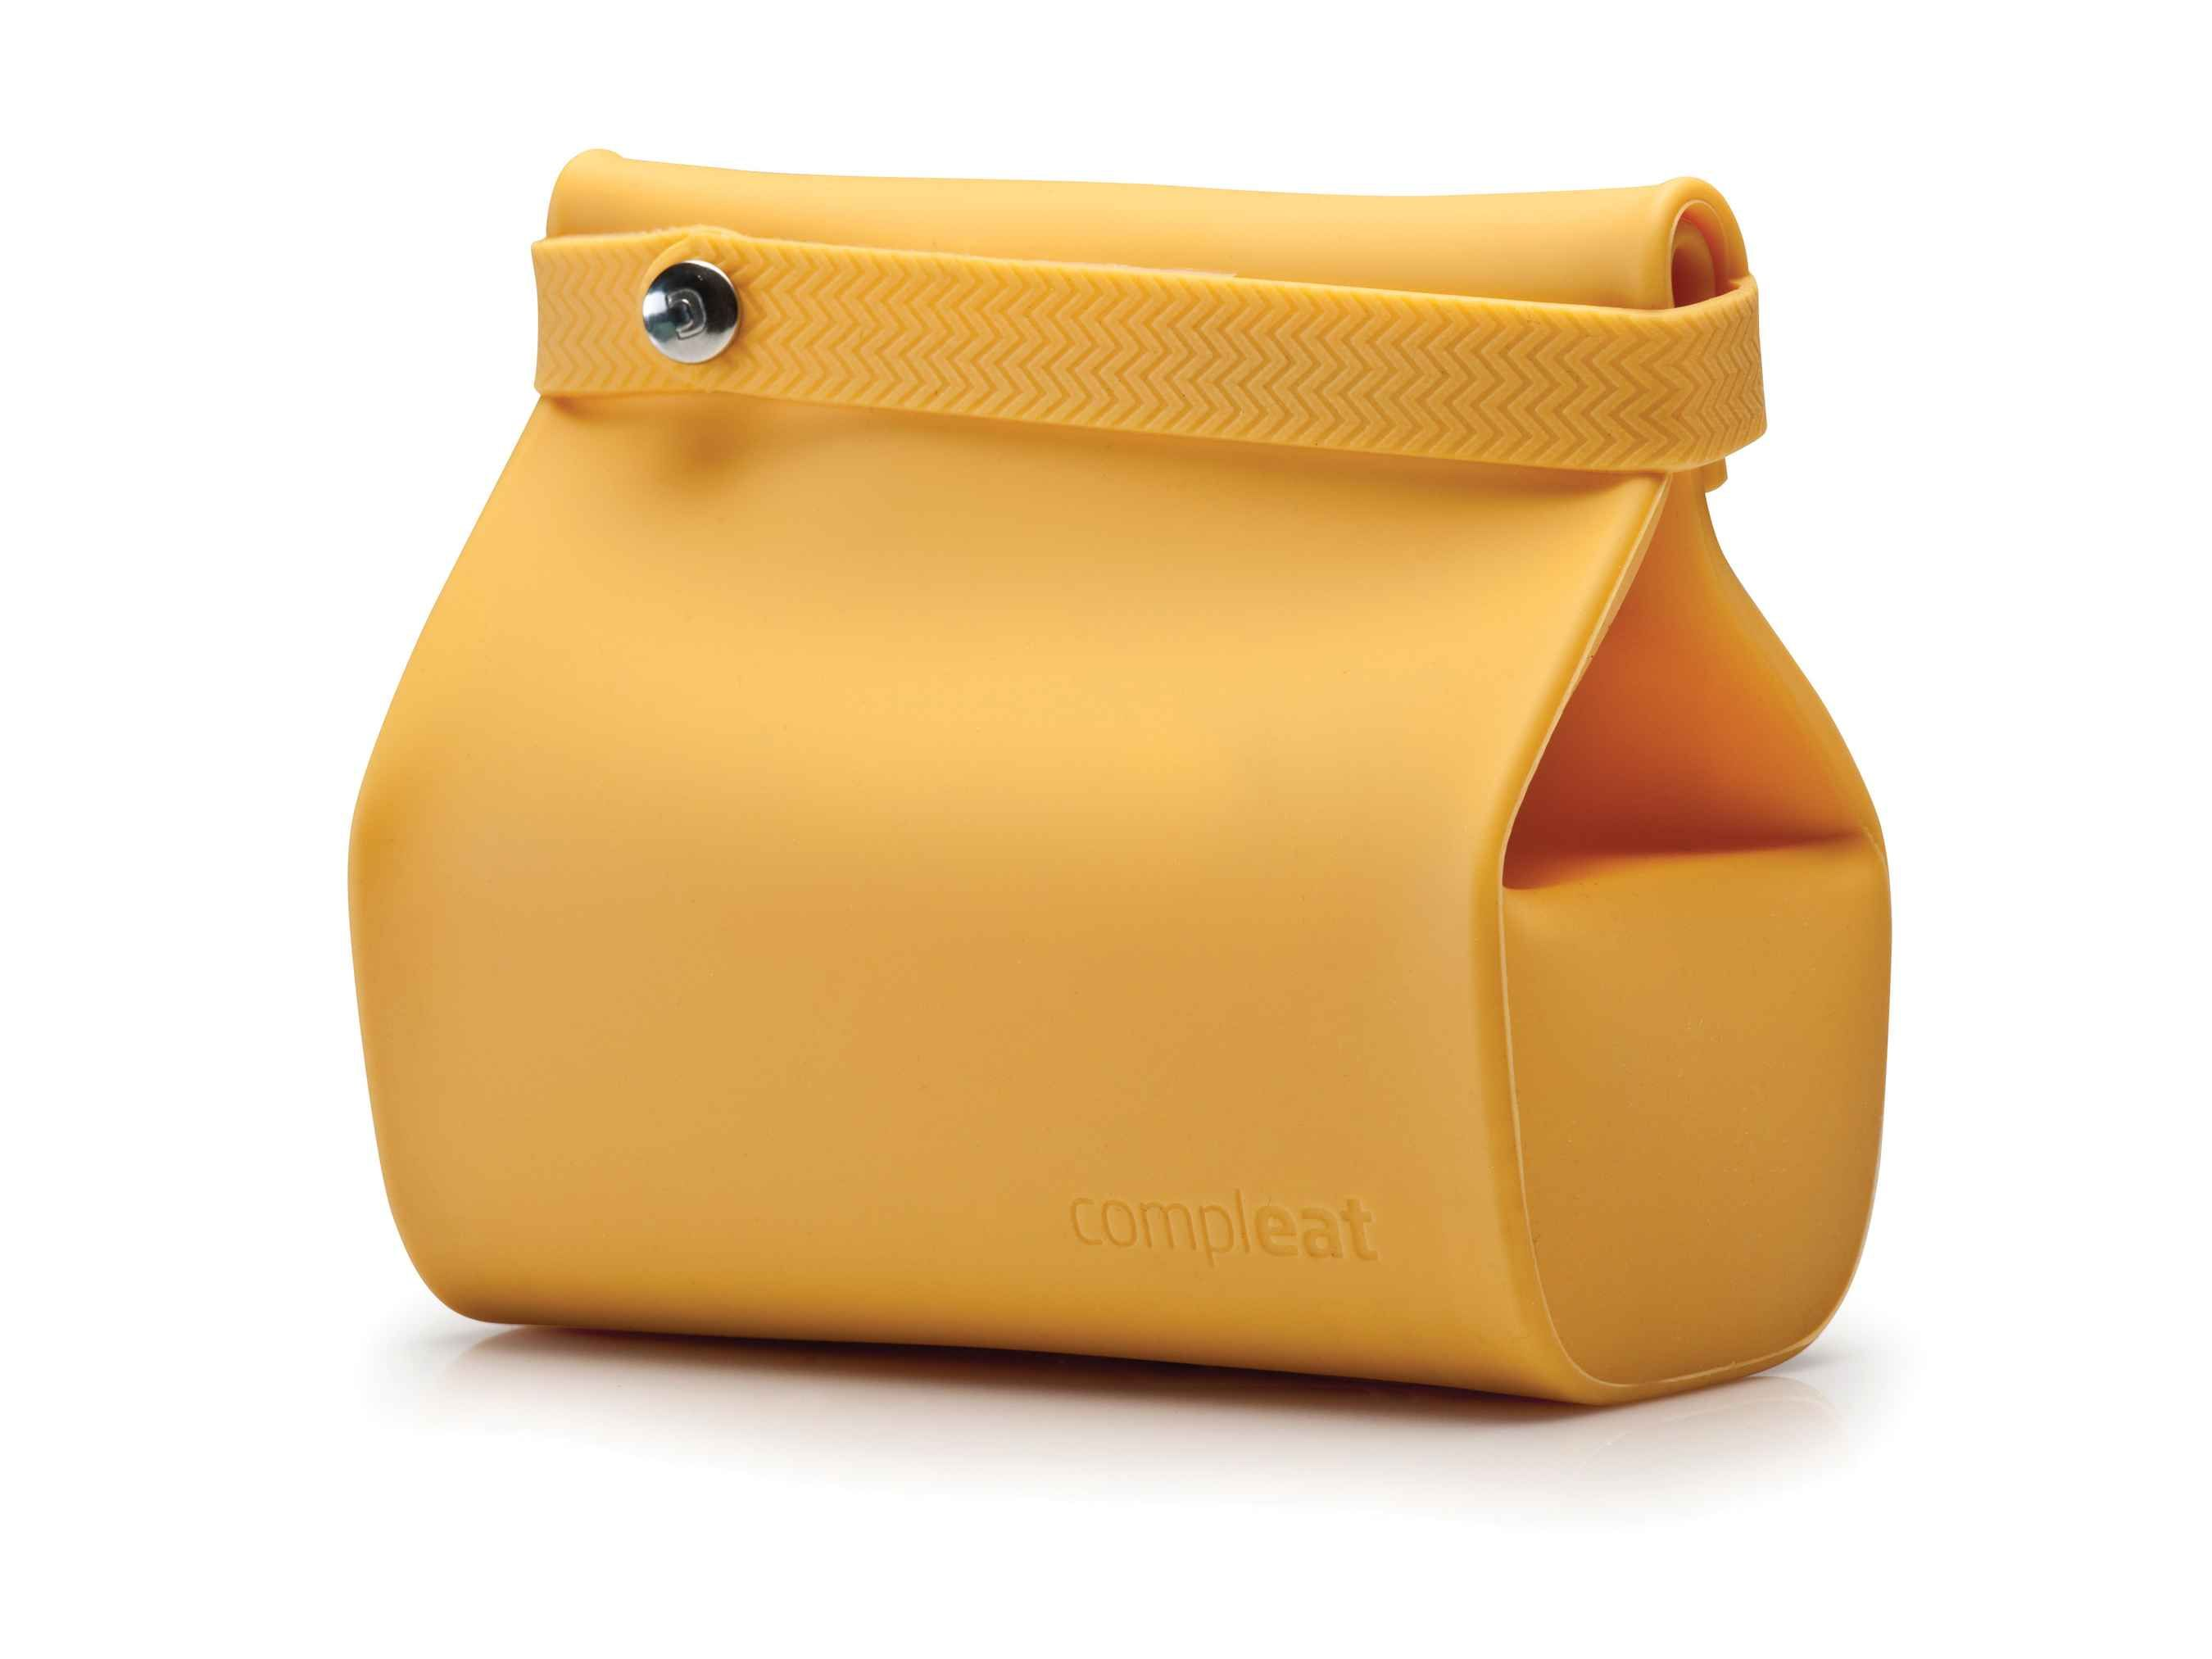 Compleat Food Bag – adorable! Wish I could buy it in the states.